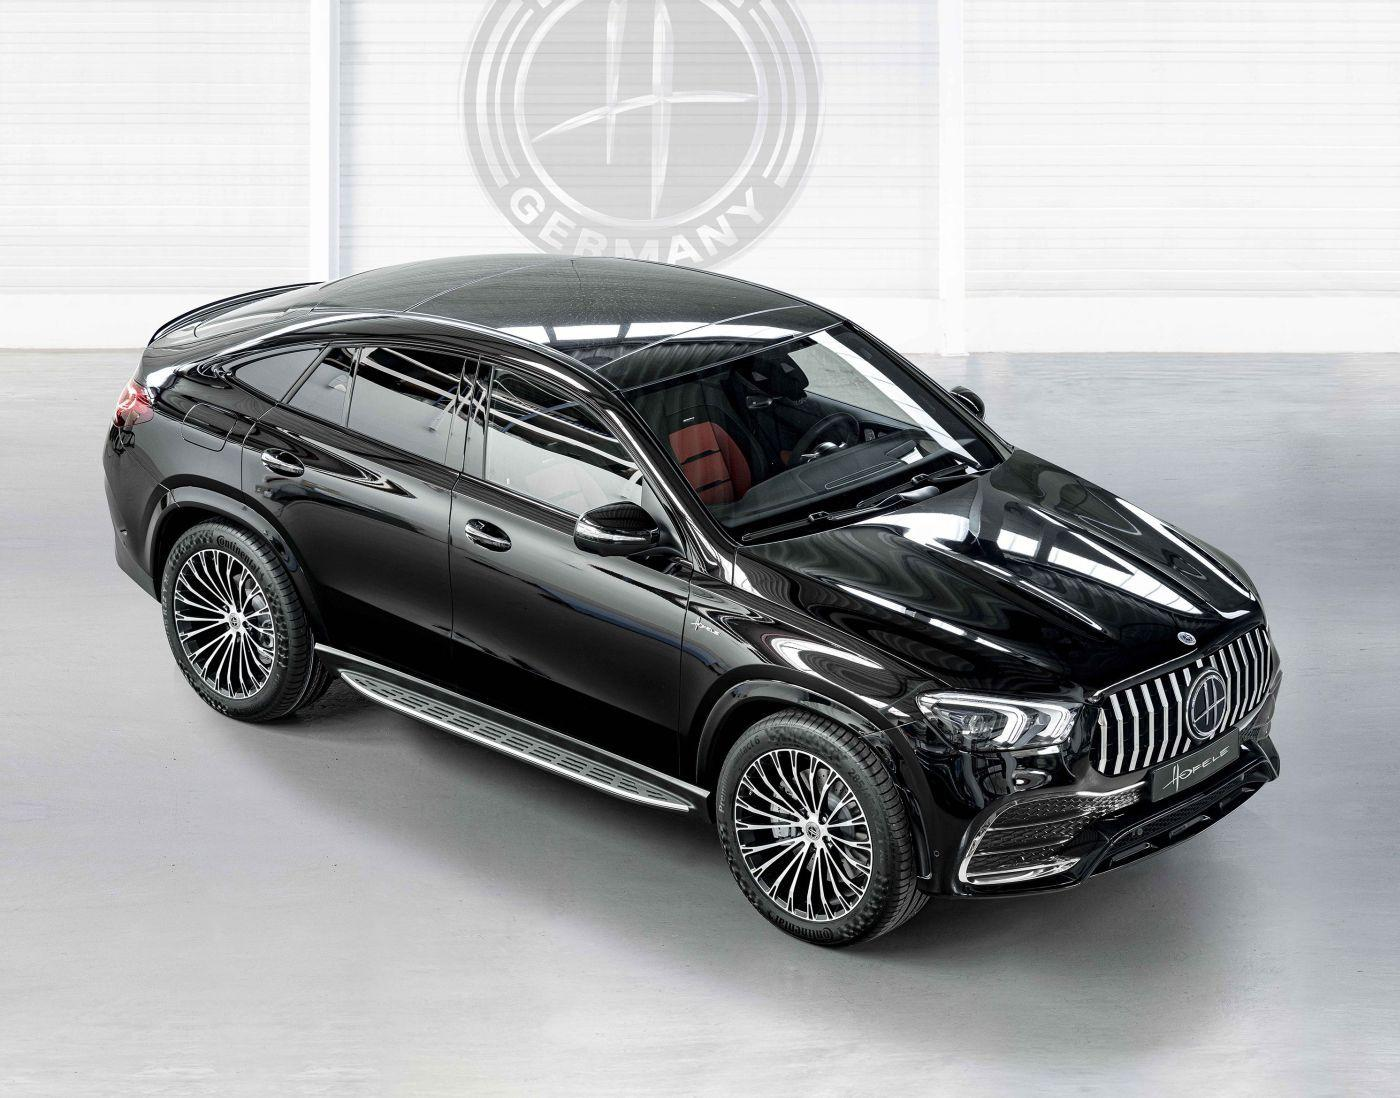 Mercedes-Benz HGLE Coupe by Hofele, Maybach na jeftiniji način